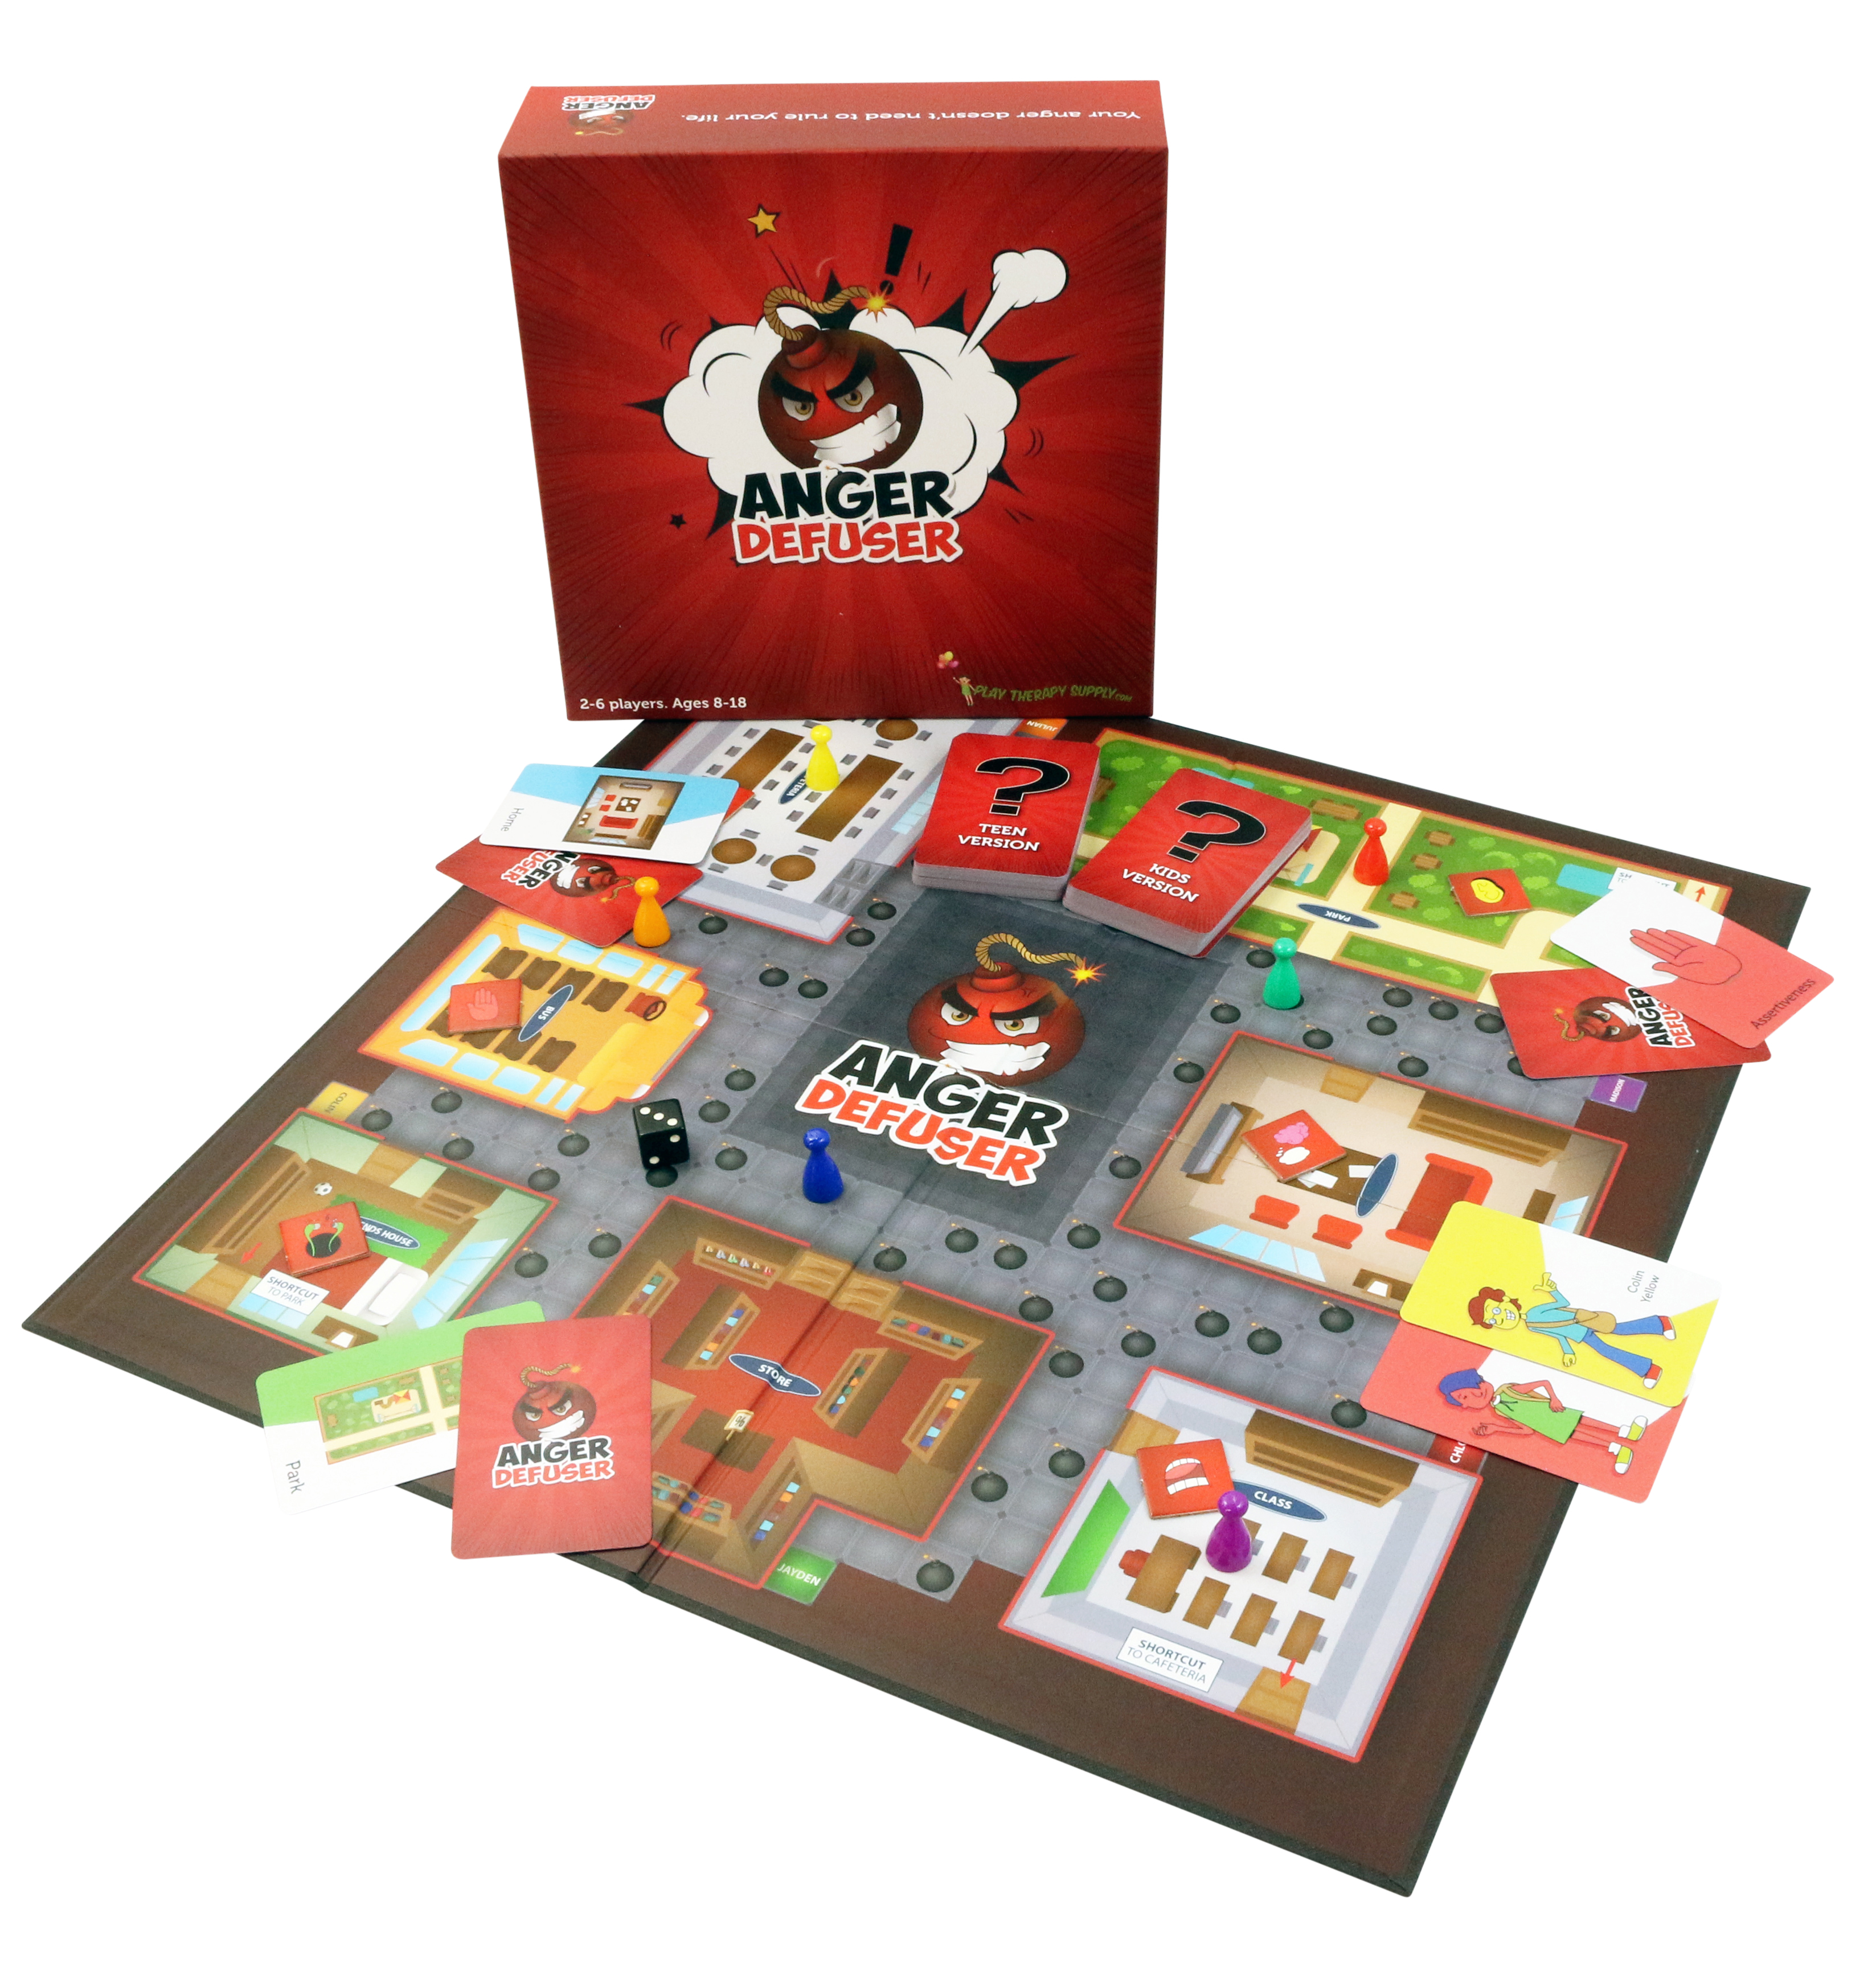 Anger Defuser: The Fun Anger Management Game for Kids and Teens